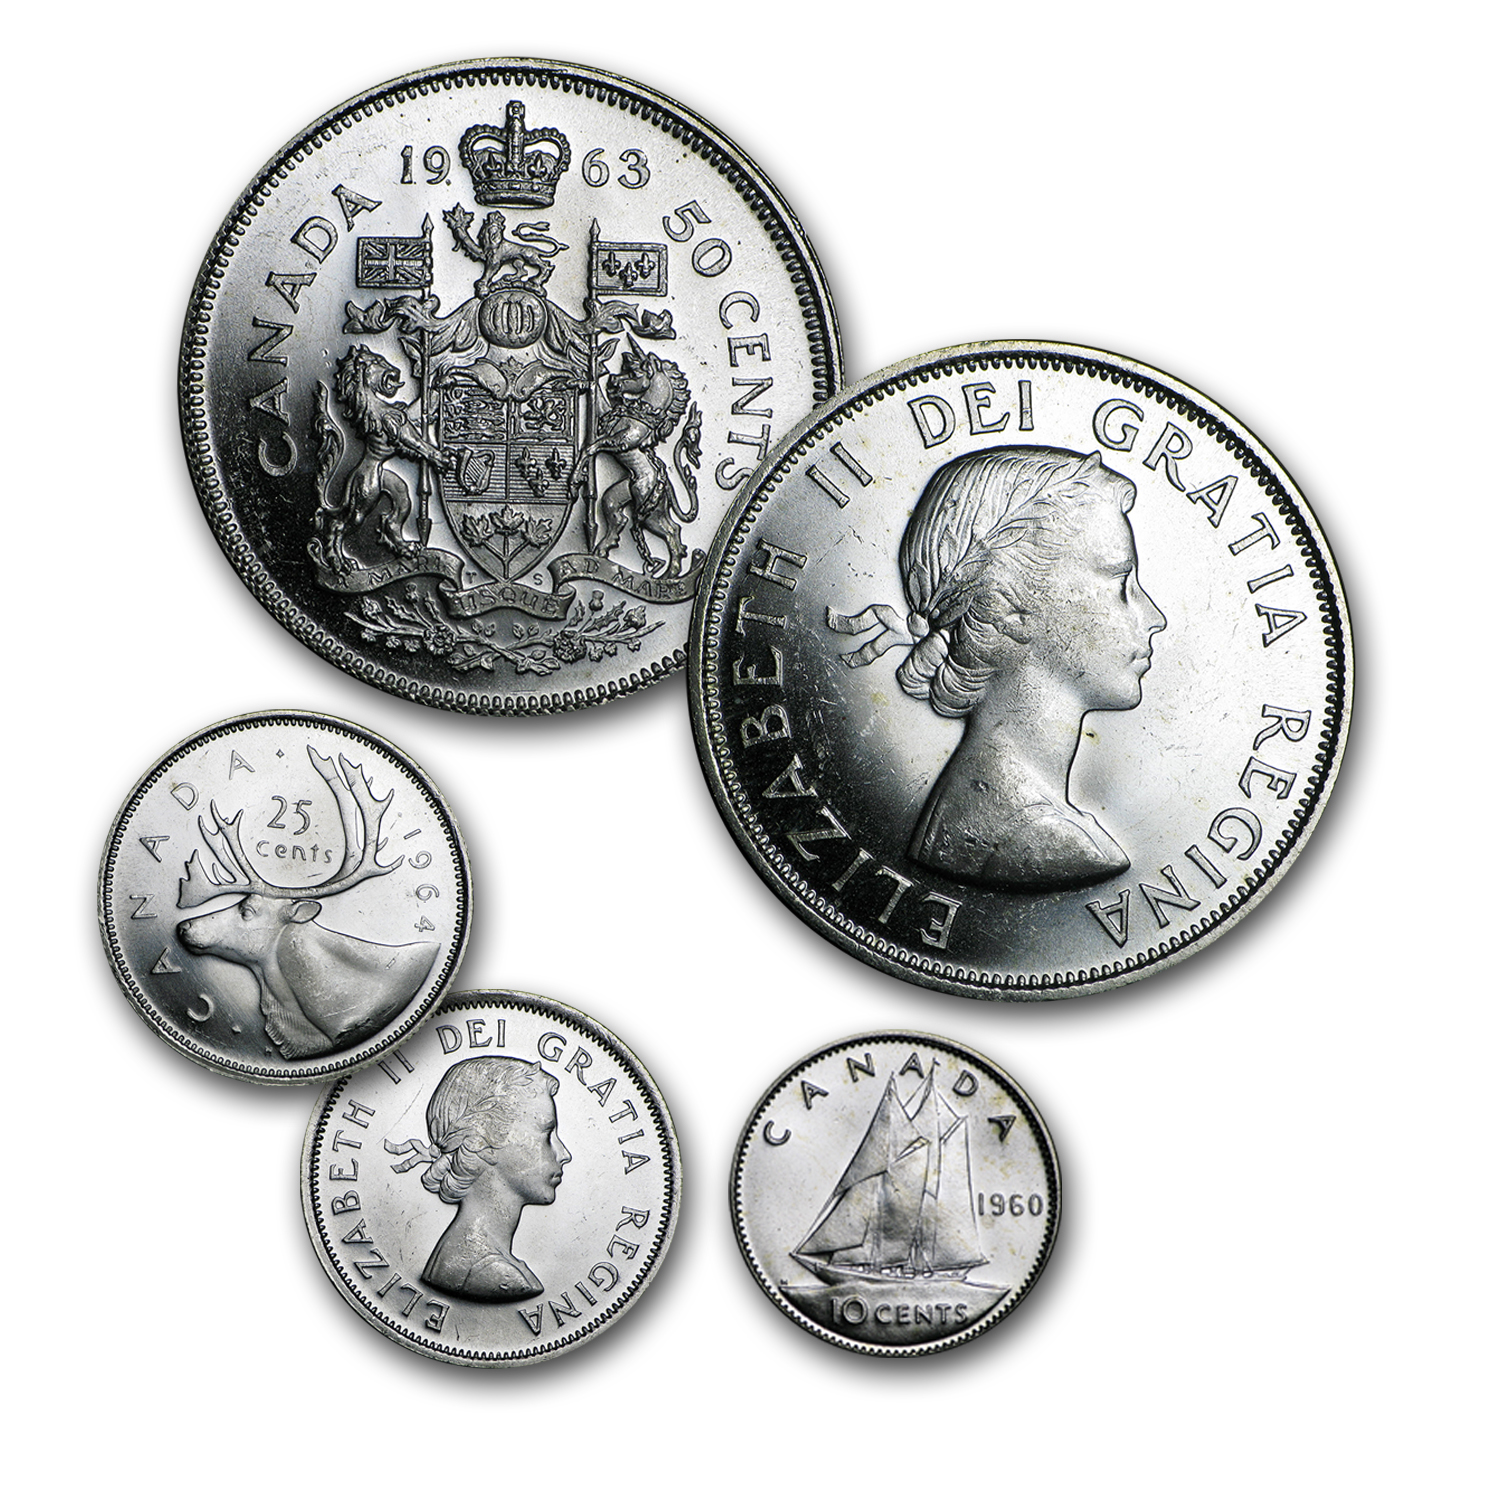 80% Silver Canadian Coins BU ($10 CAD Face Value)